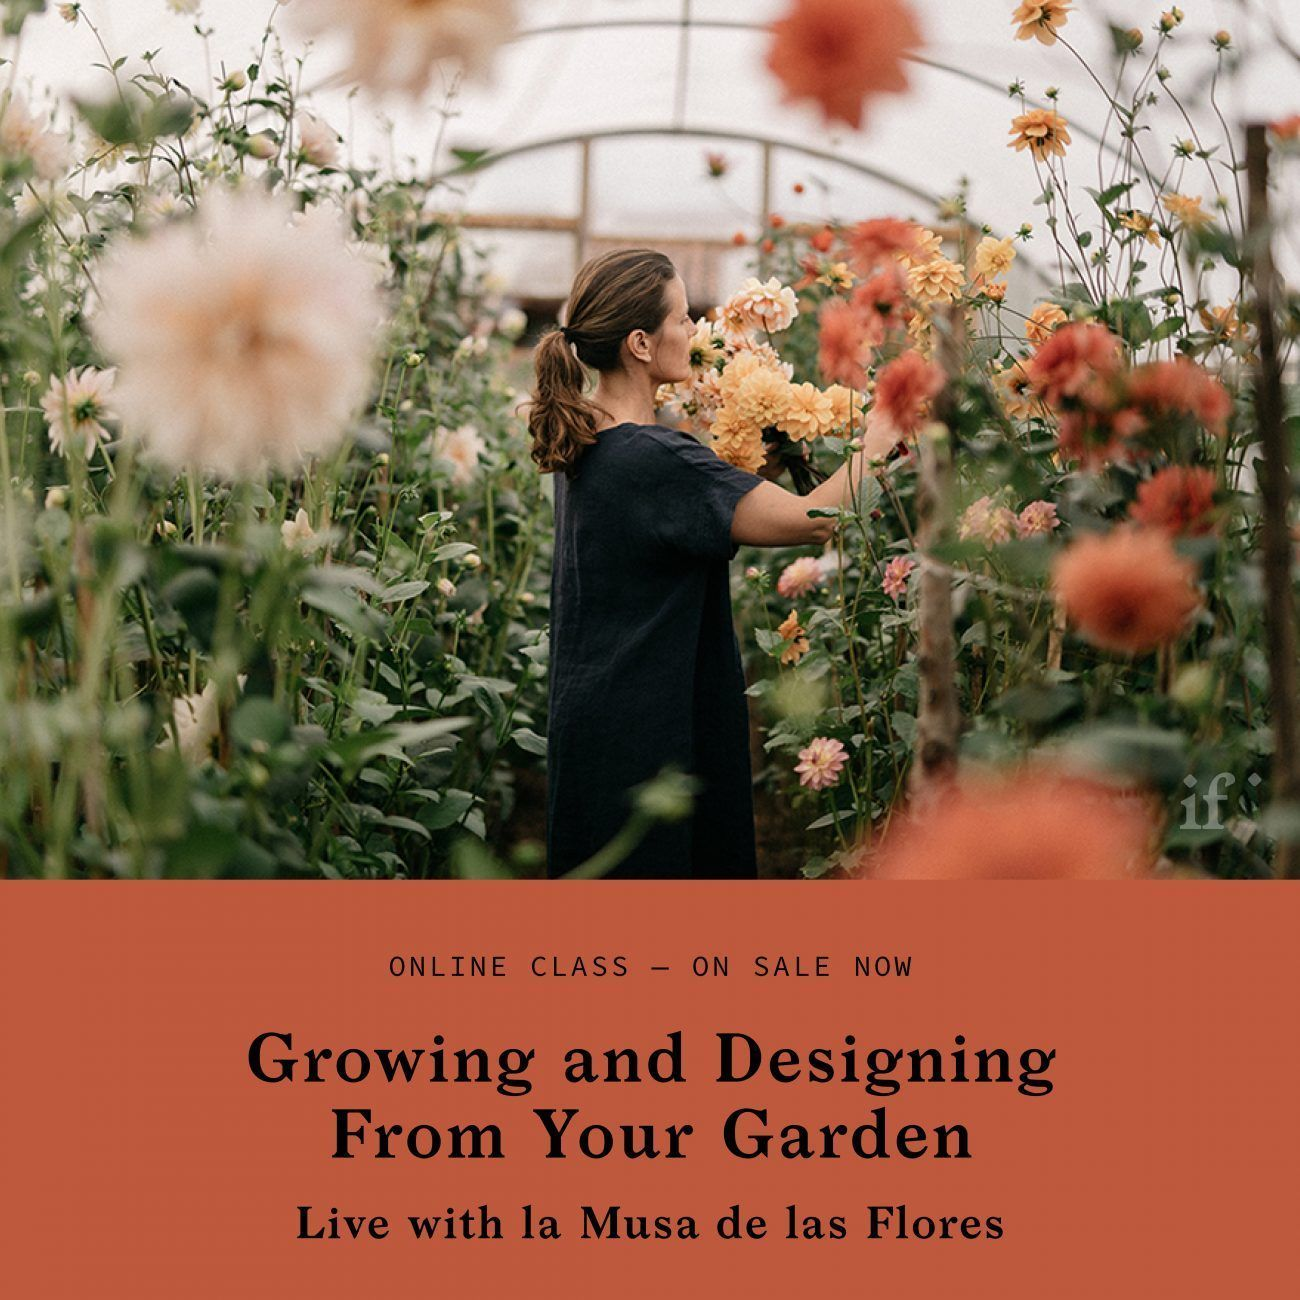 Growing and Designing From Your Garden with la Musa de las Floras